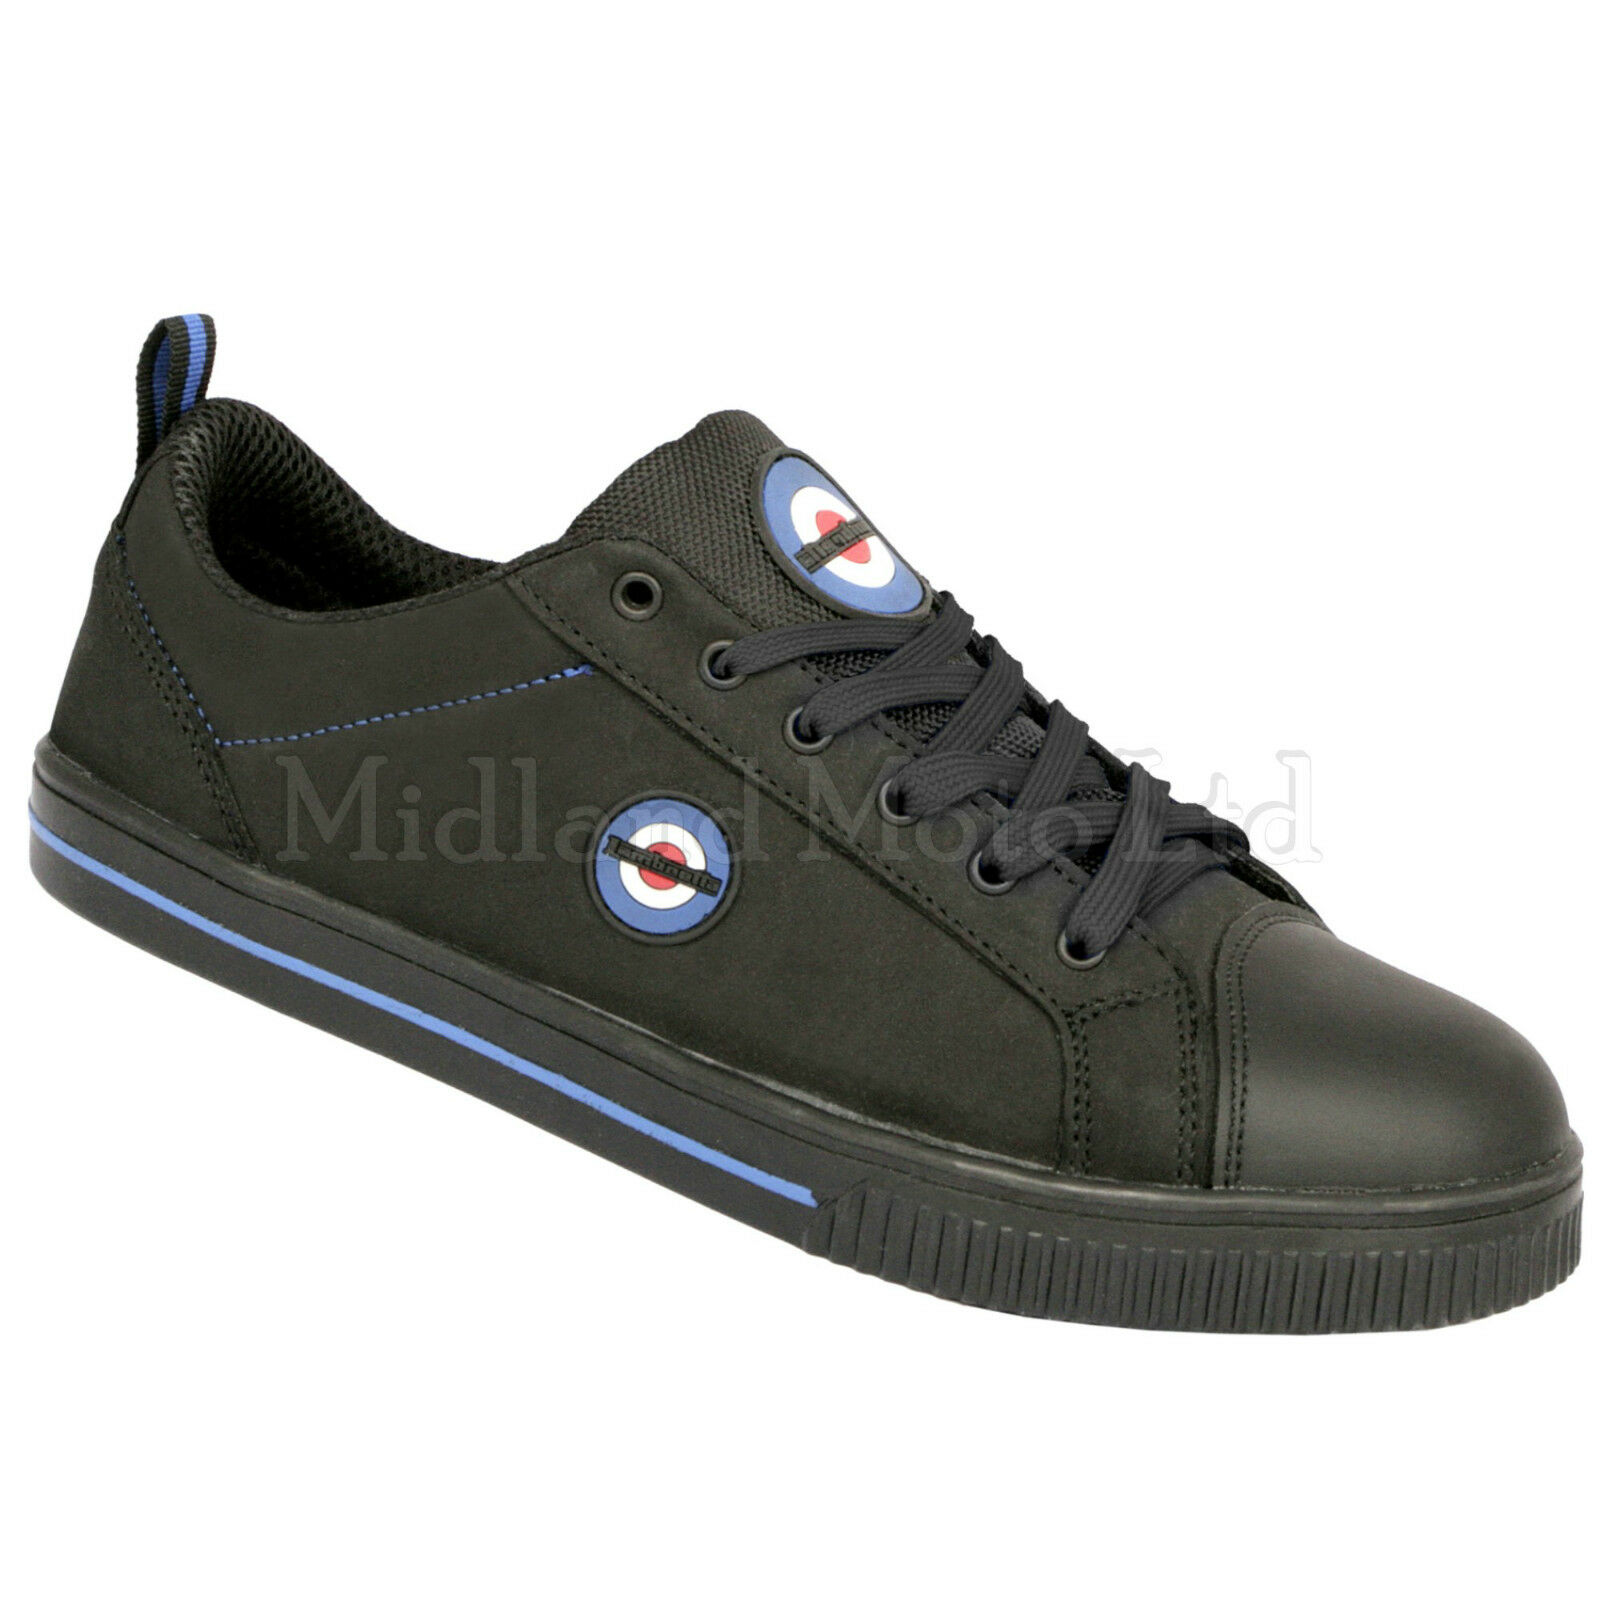 Lambretta Safety Steel Toe Cap Plimsoll Skater Style Chaussures. Trainers Pumps. DB002